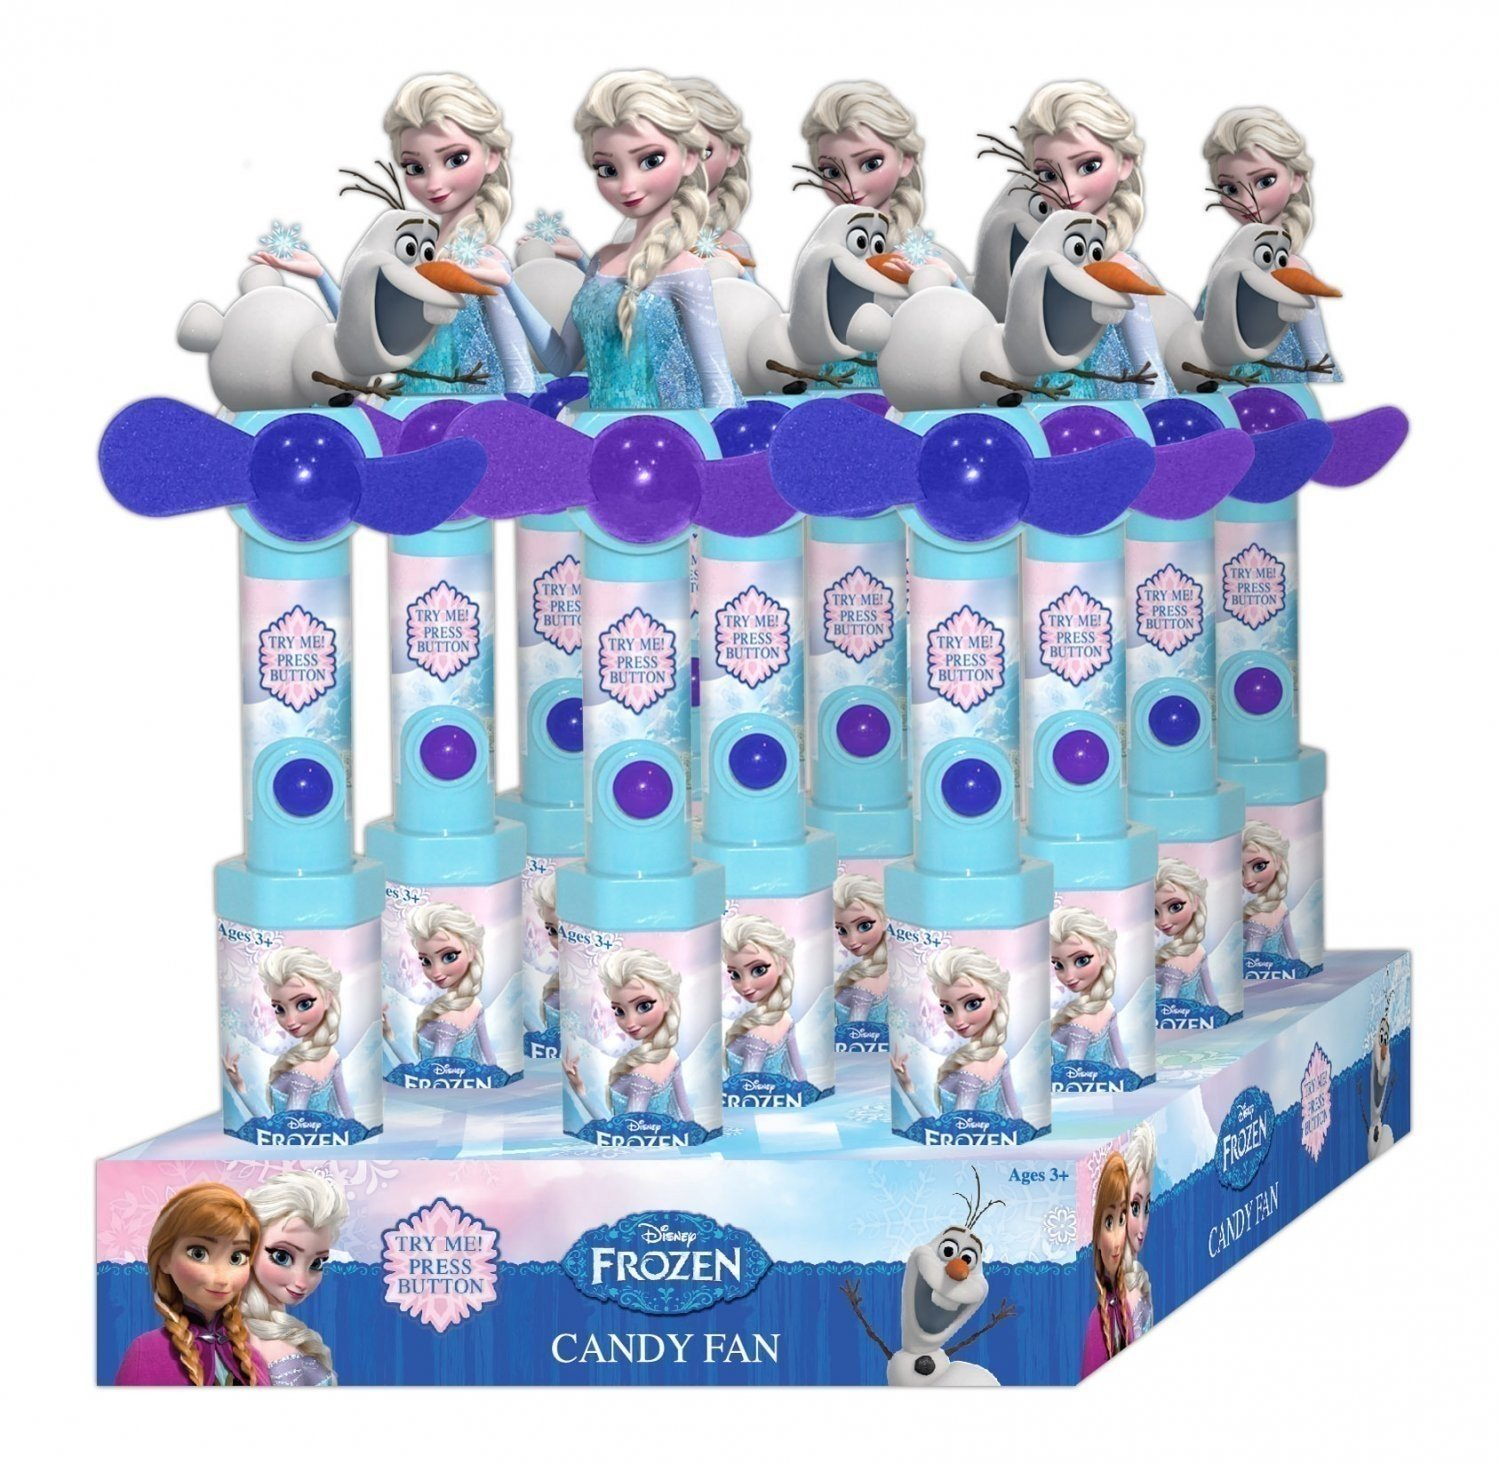 Disney Frozen Candy Filled Fan 12ct by CandyRific